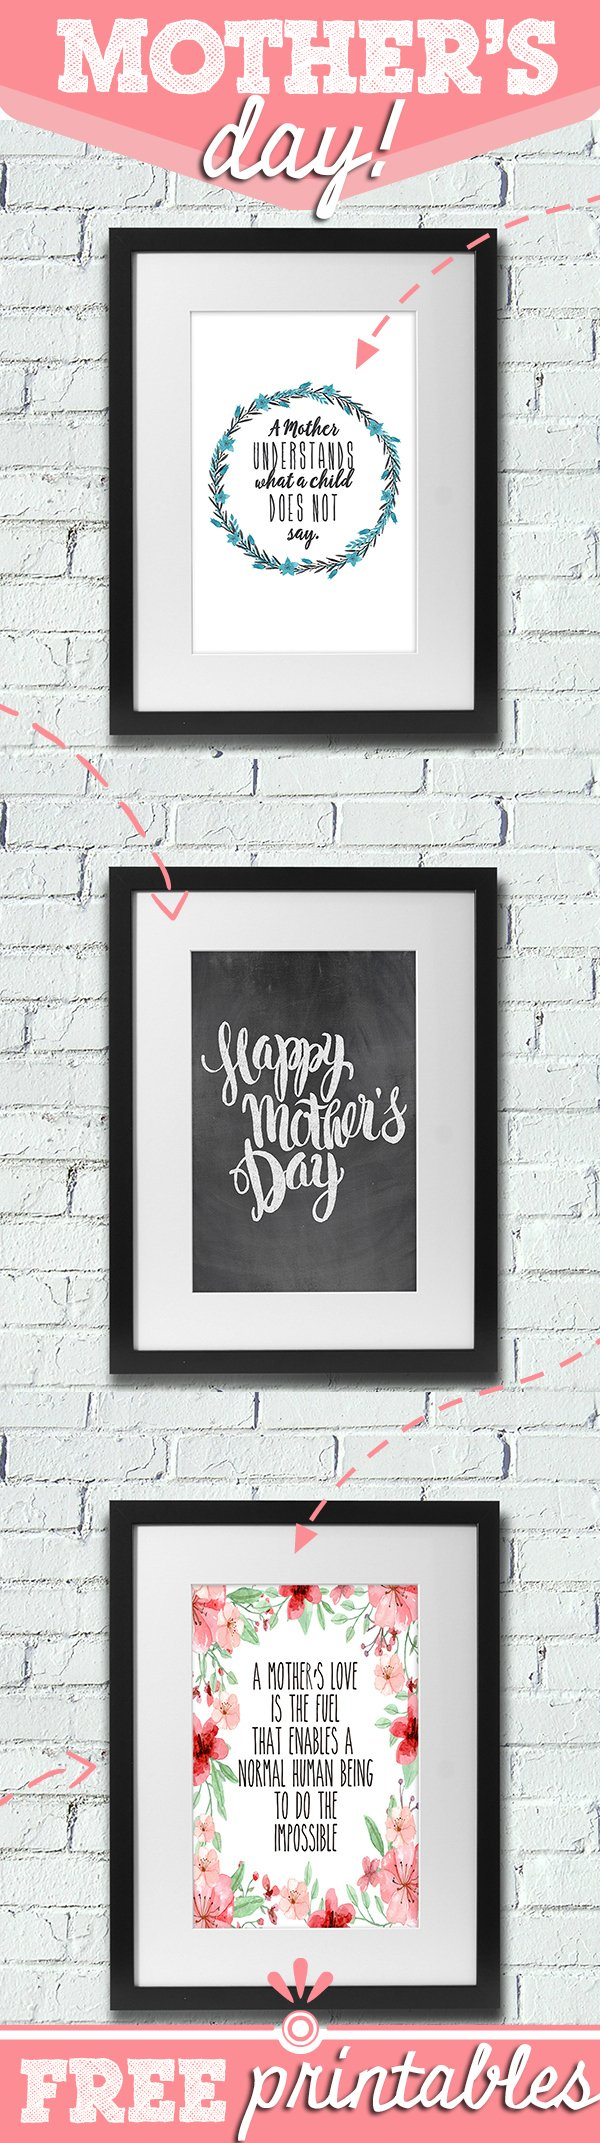 Totally budget friendly way to show mom you care! Choice of three cute and personal printables to choose from. Add a dollar store frame and your're golden! #MothersDay #FreePrintables